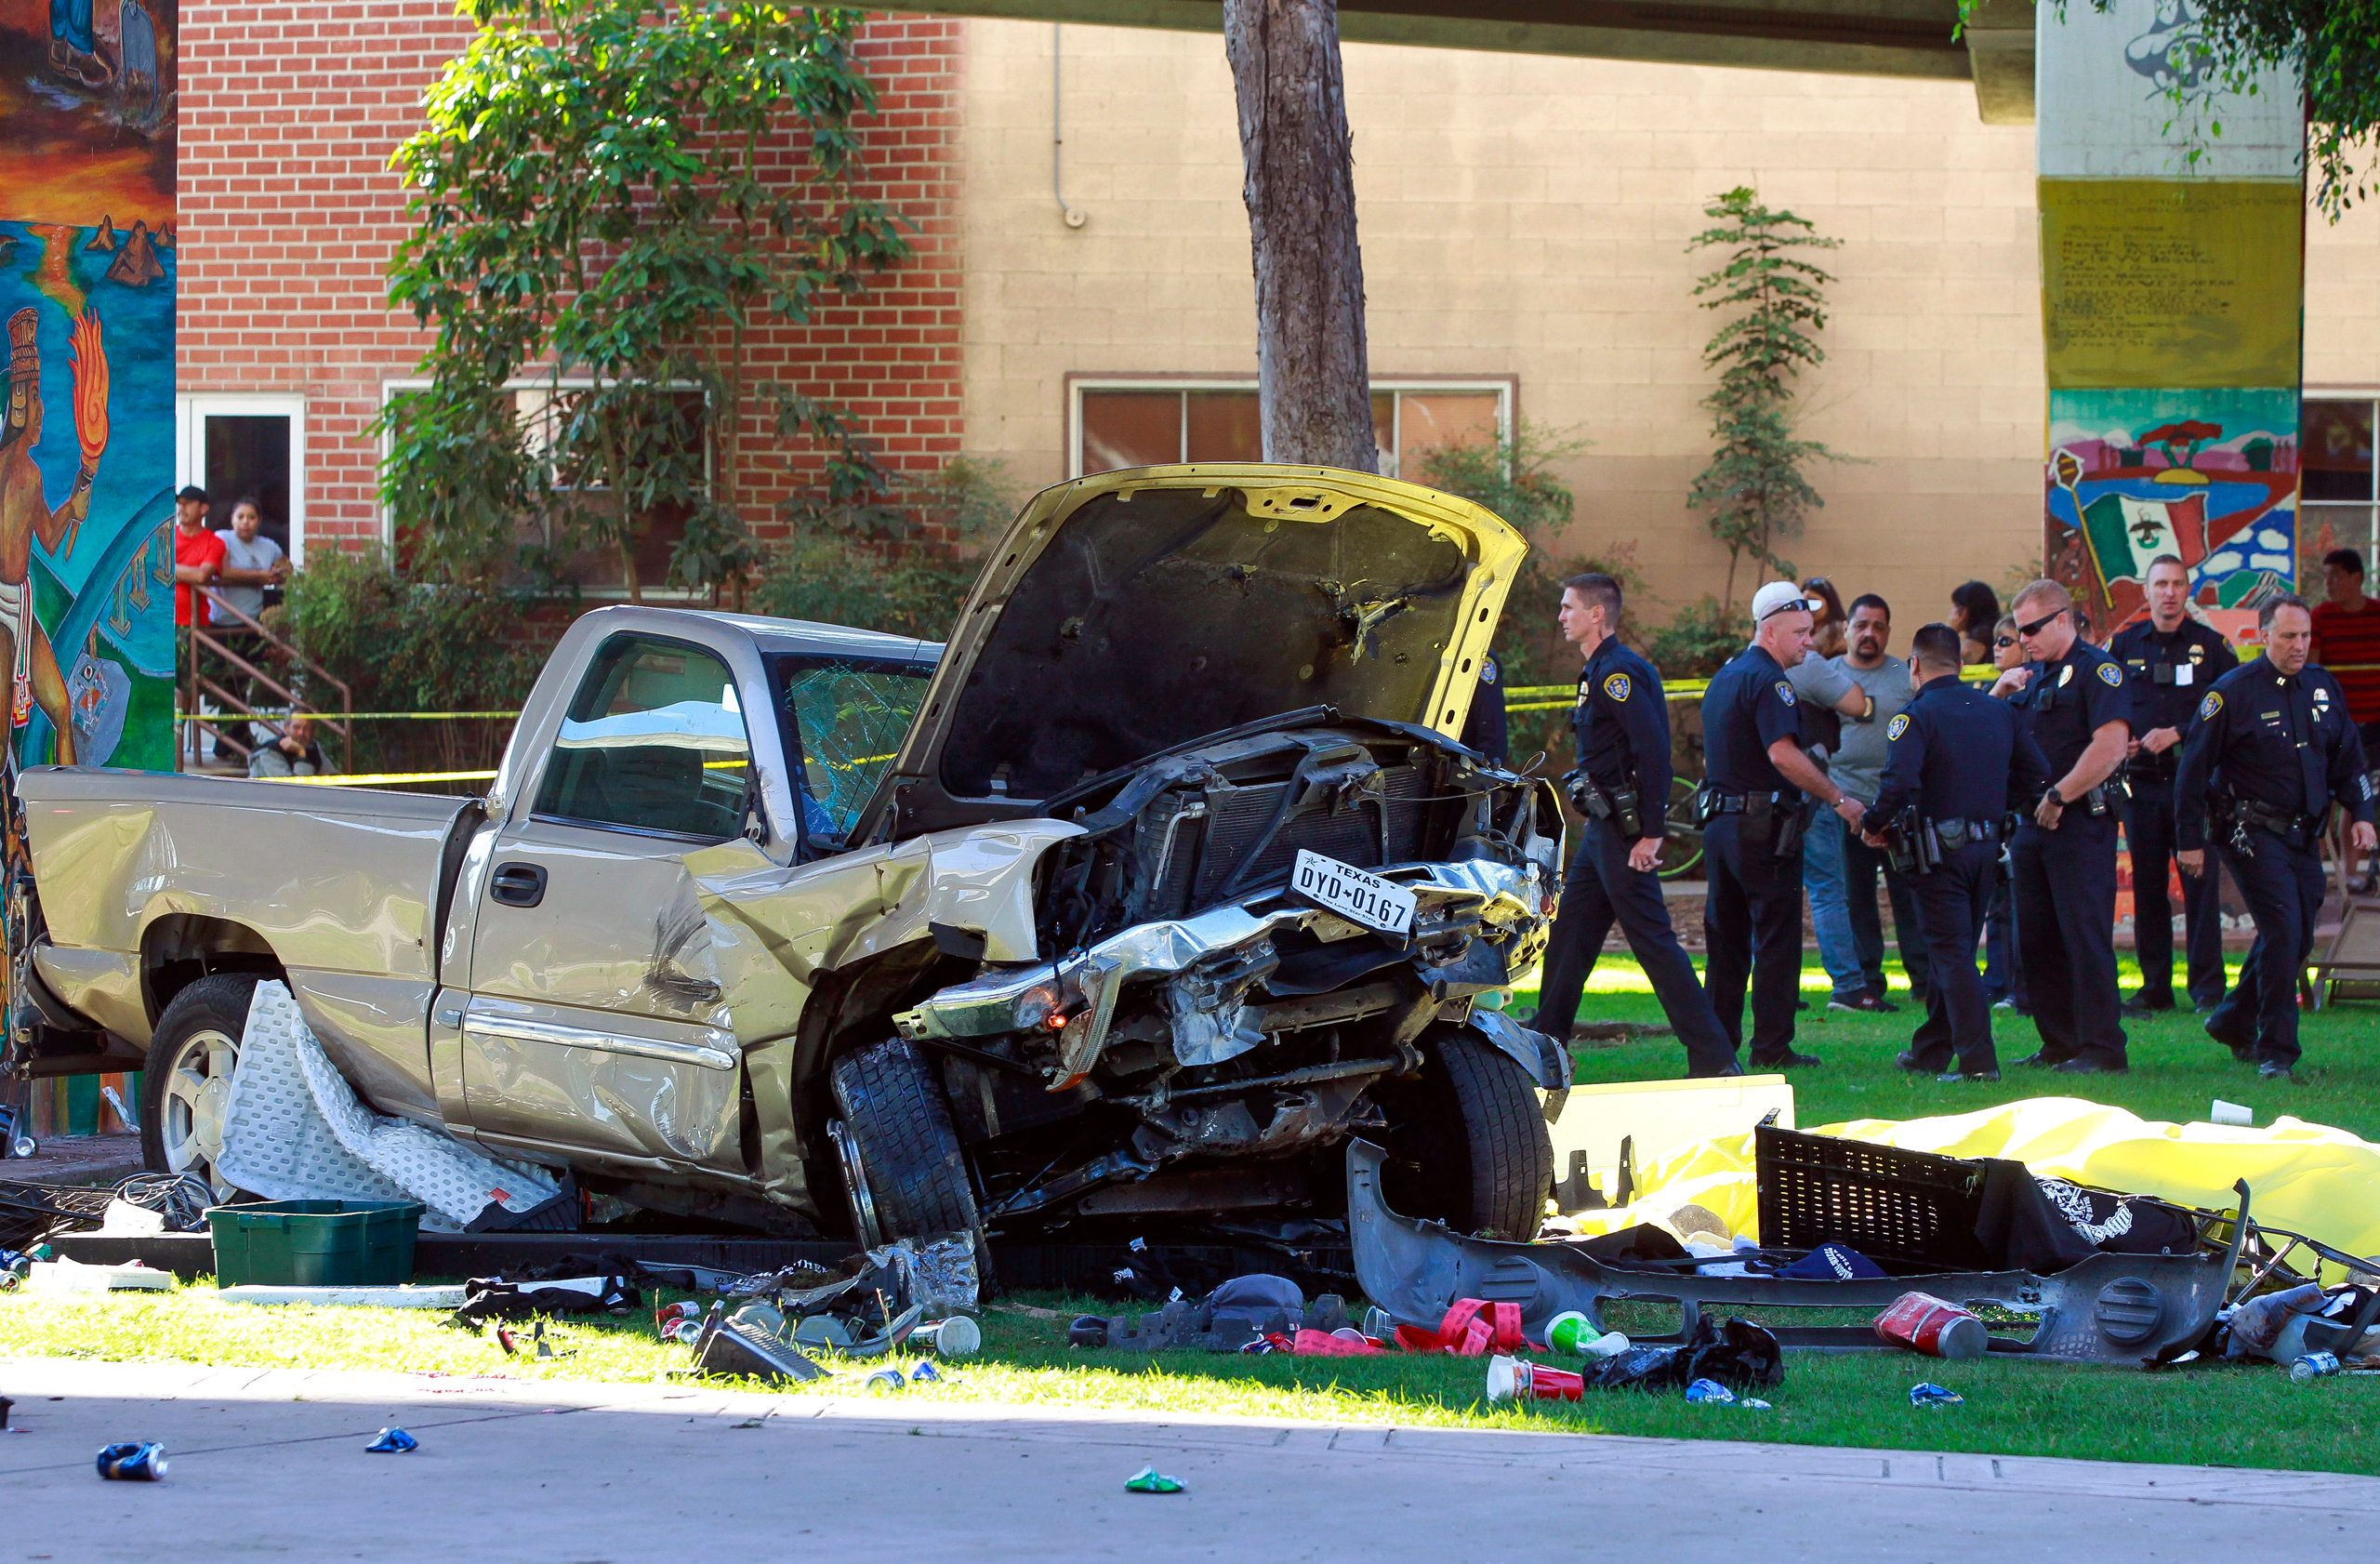 Police stand near the pickup truck that landed at Chicano Park after it flew off a ramp to the San Diego Coronado Bridge in San Diego on Oct. 15, 2016.